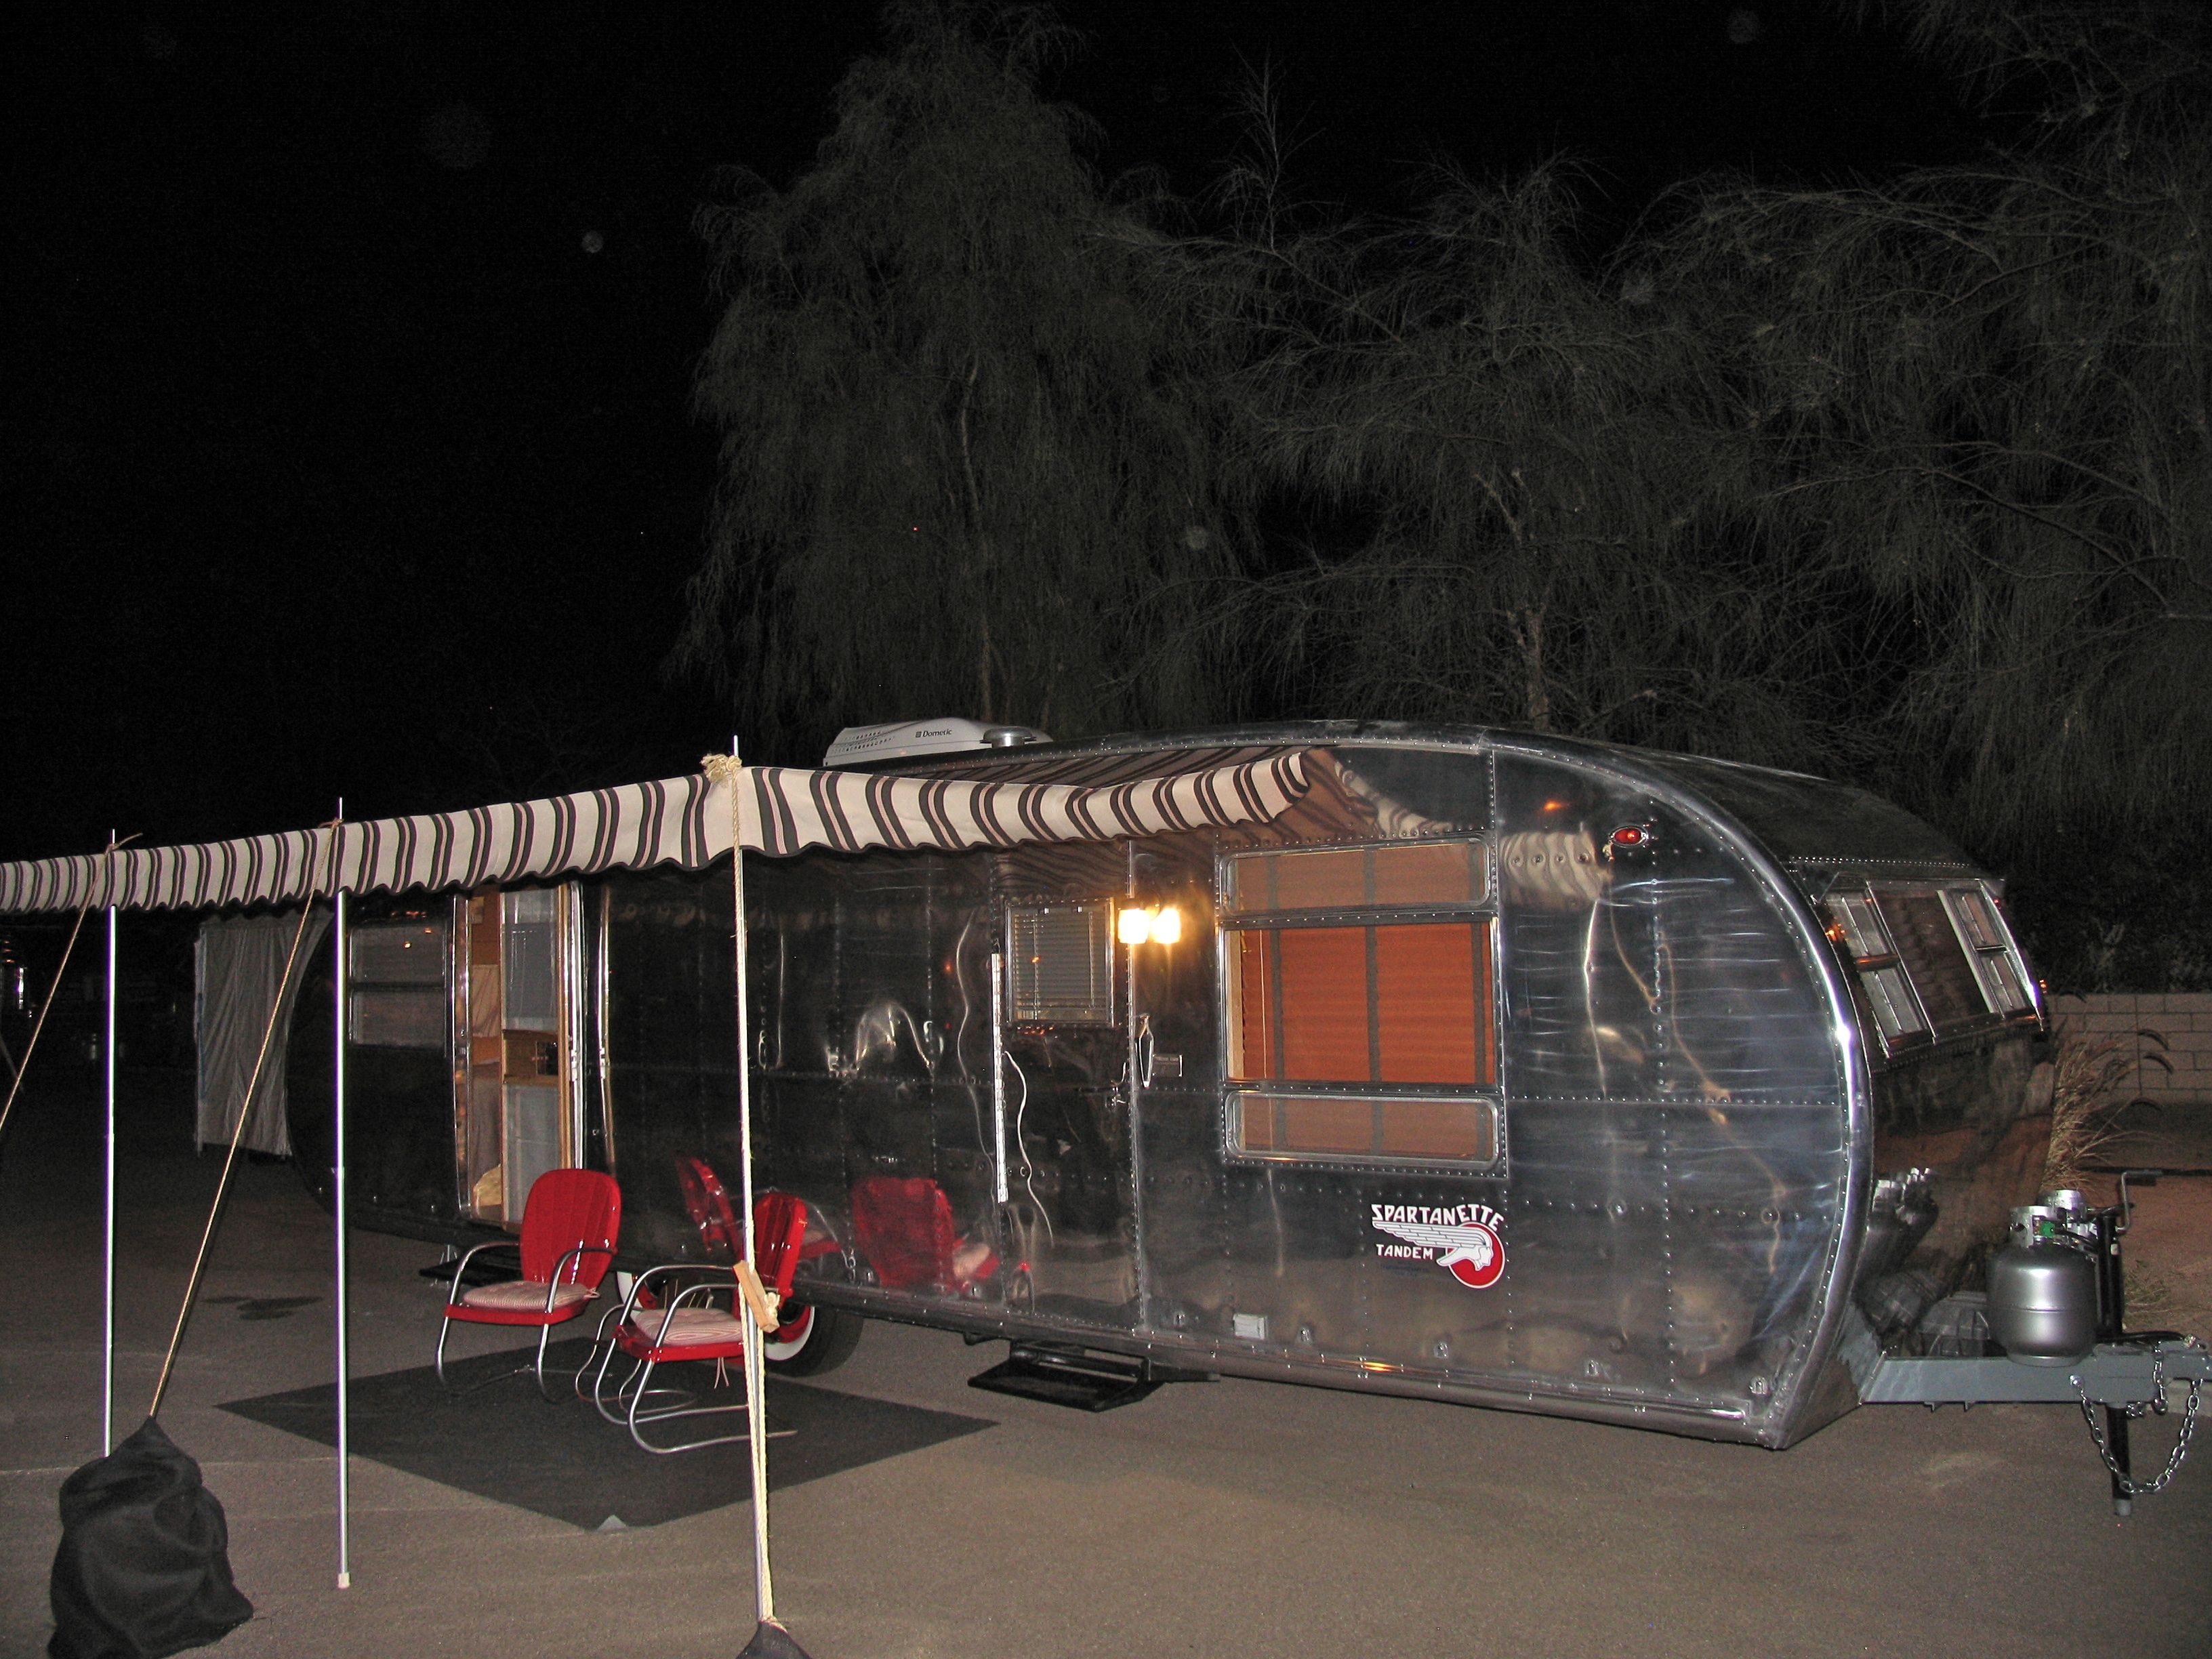 A Shiny Polished Exterior And Striped Awning Return This 1953 Spartanette Tandem To Its Glo Vintage Trailers Restoration Vintage Travel Trailers Travel Trailer